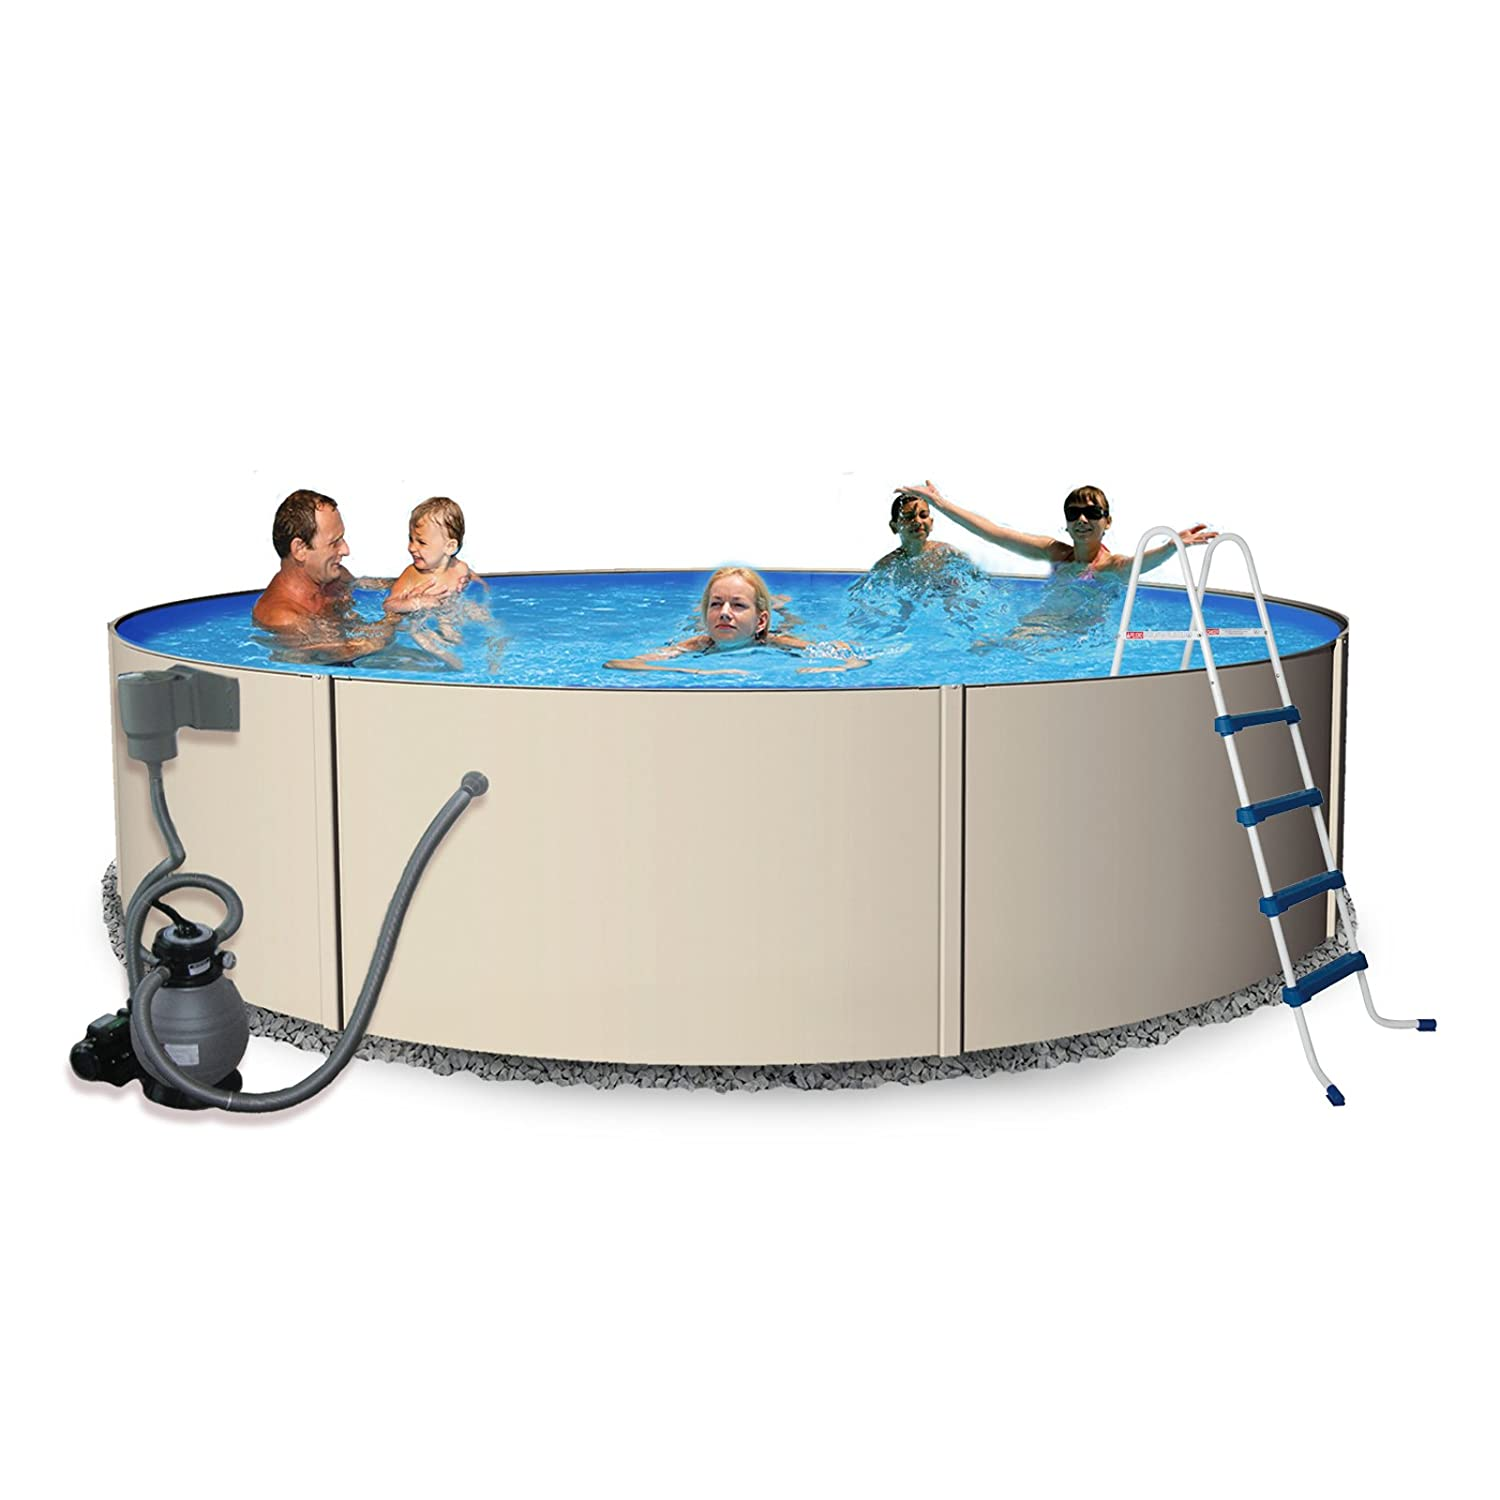 Rugged Steel 12-ft Round 48-in Deep Metal Wall Swimming Pool Package